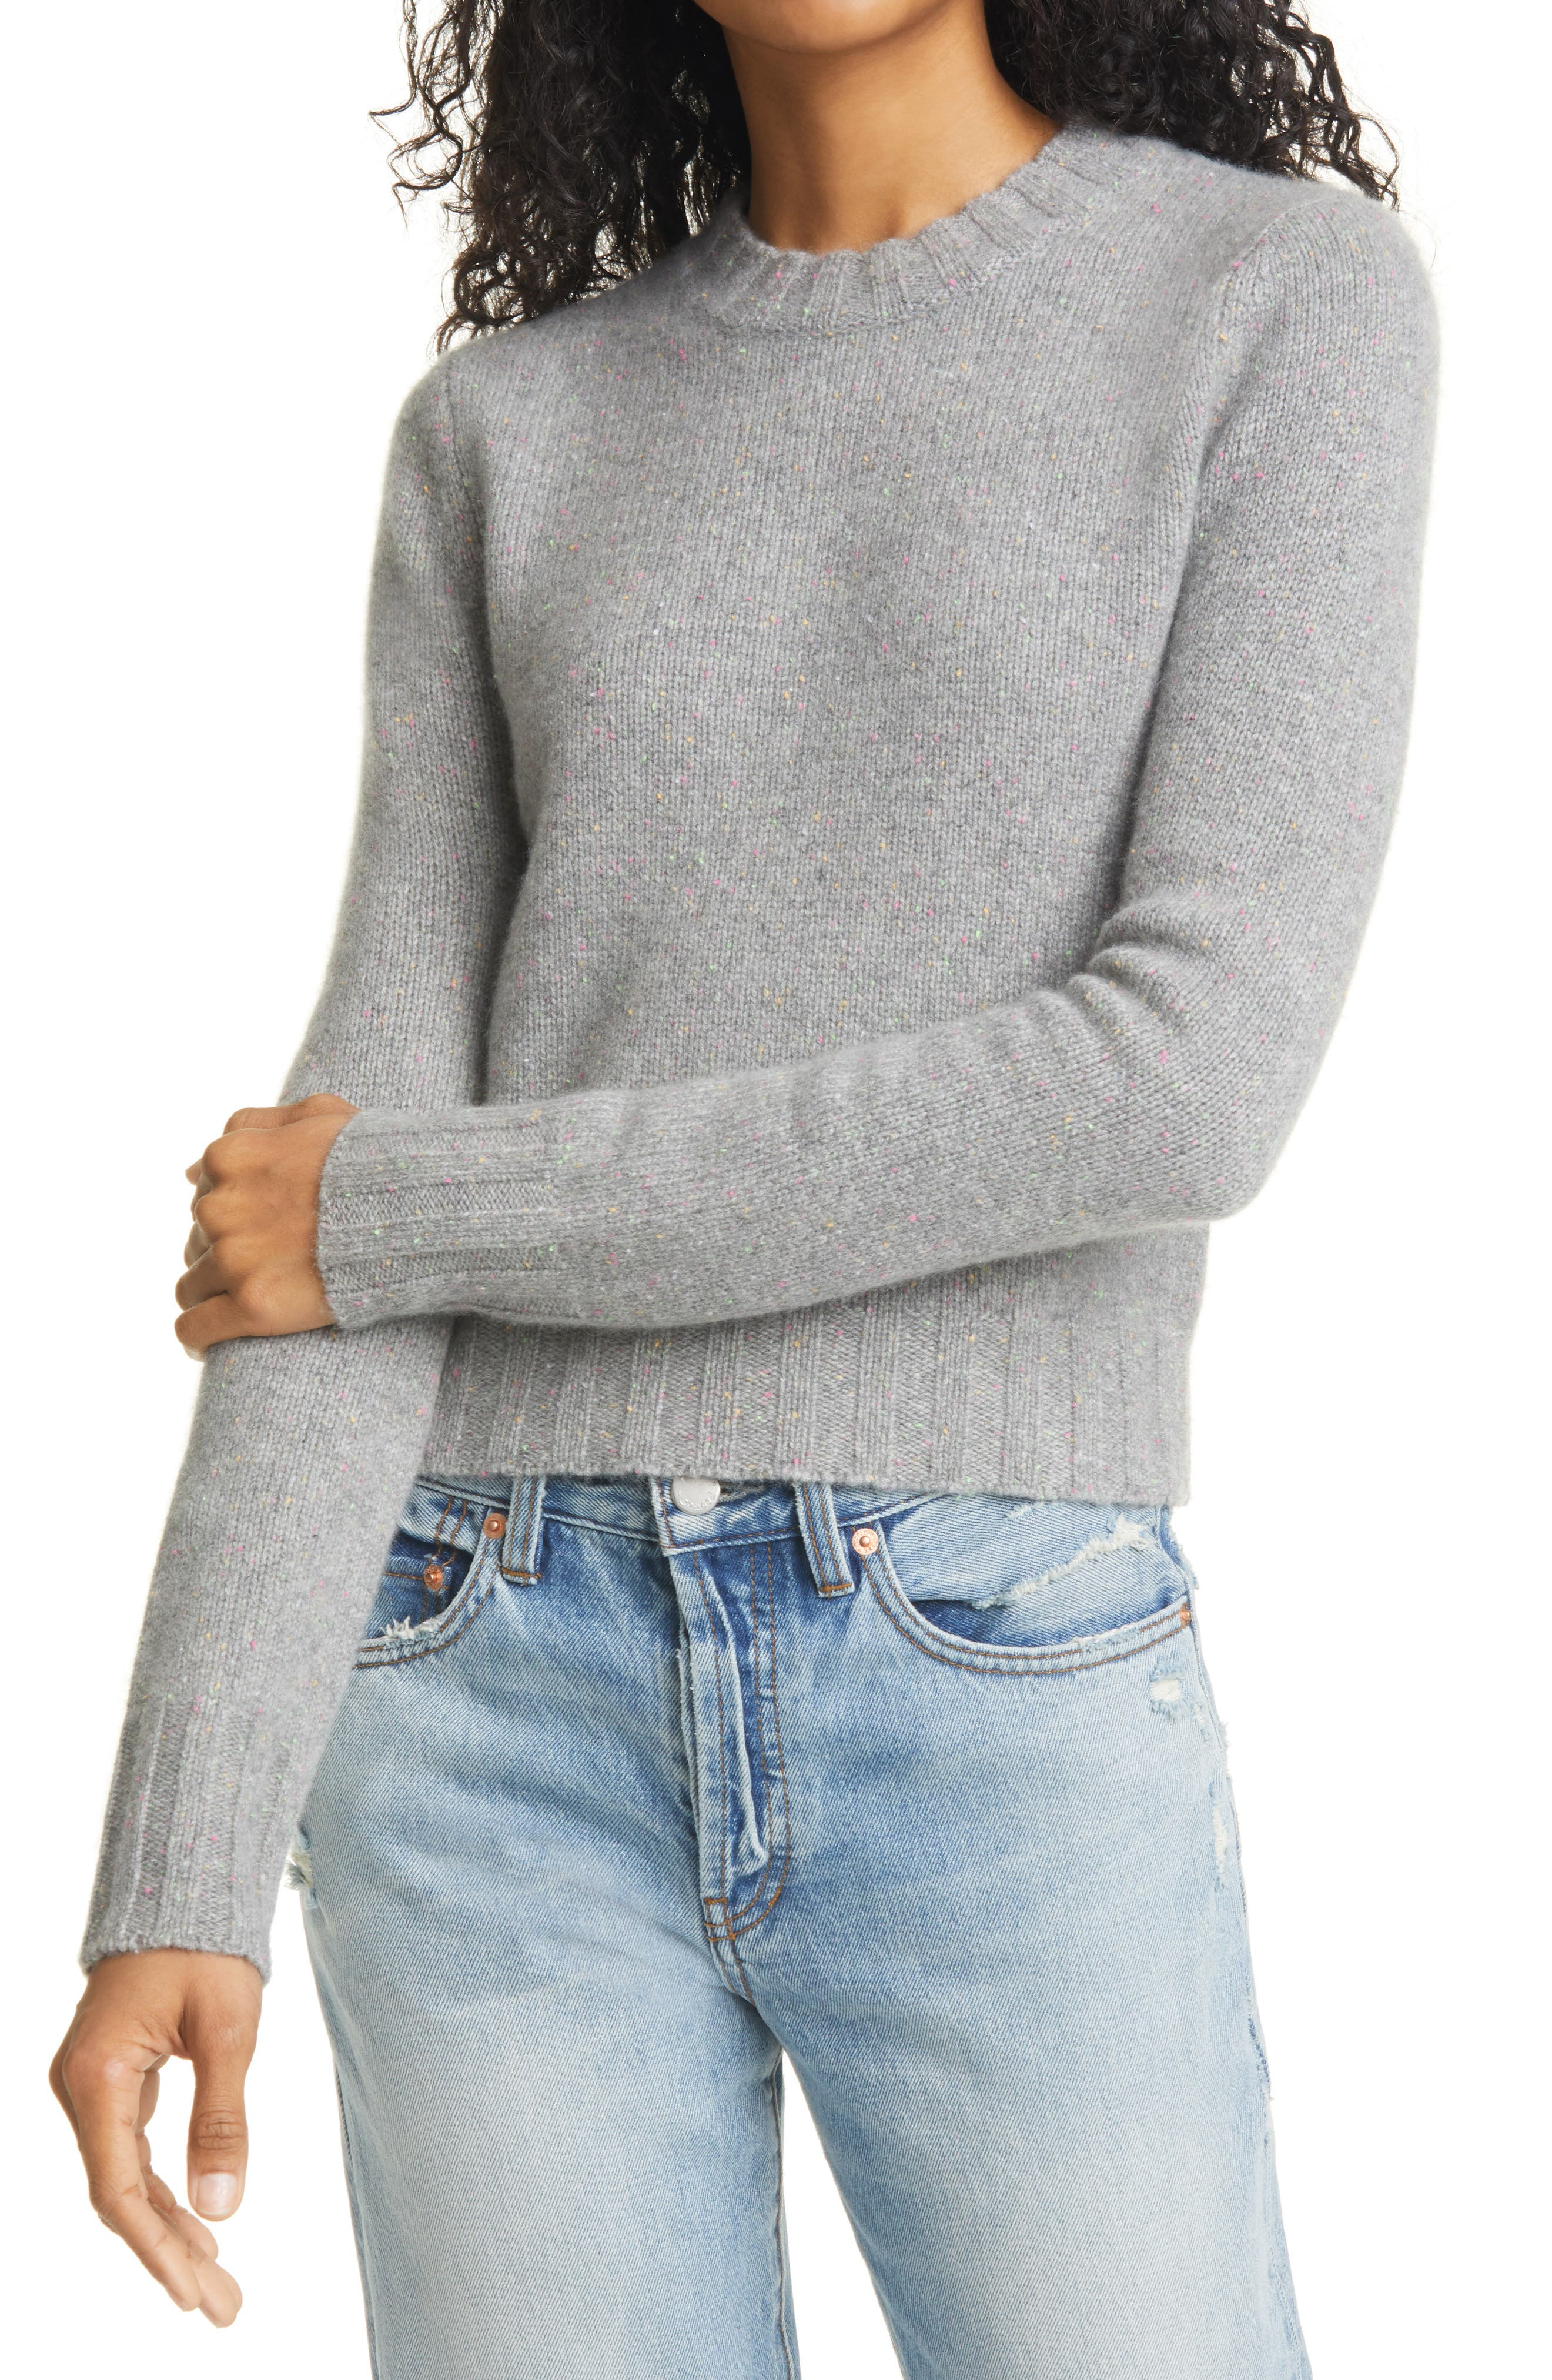 Lived In Cashmere Baby Sweater